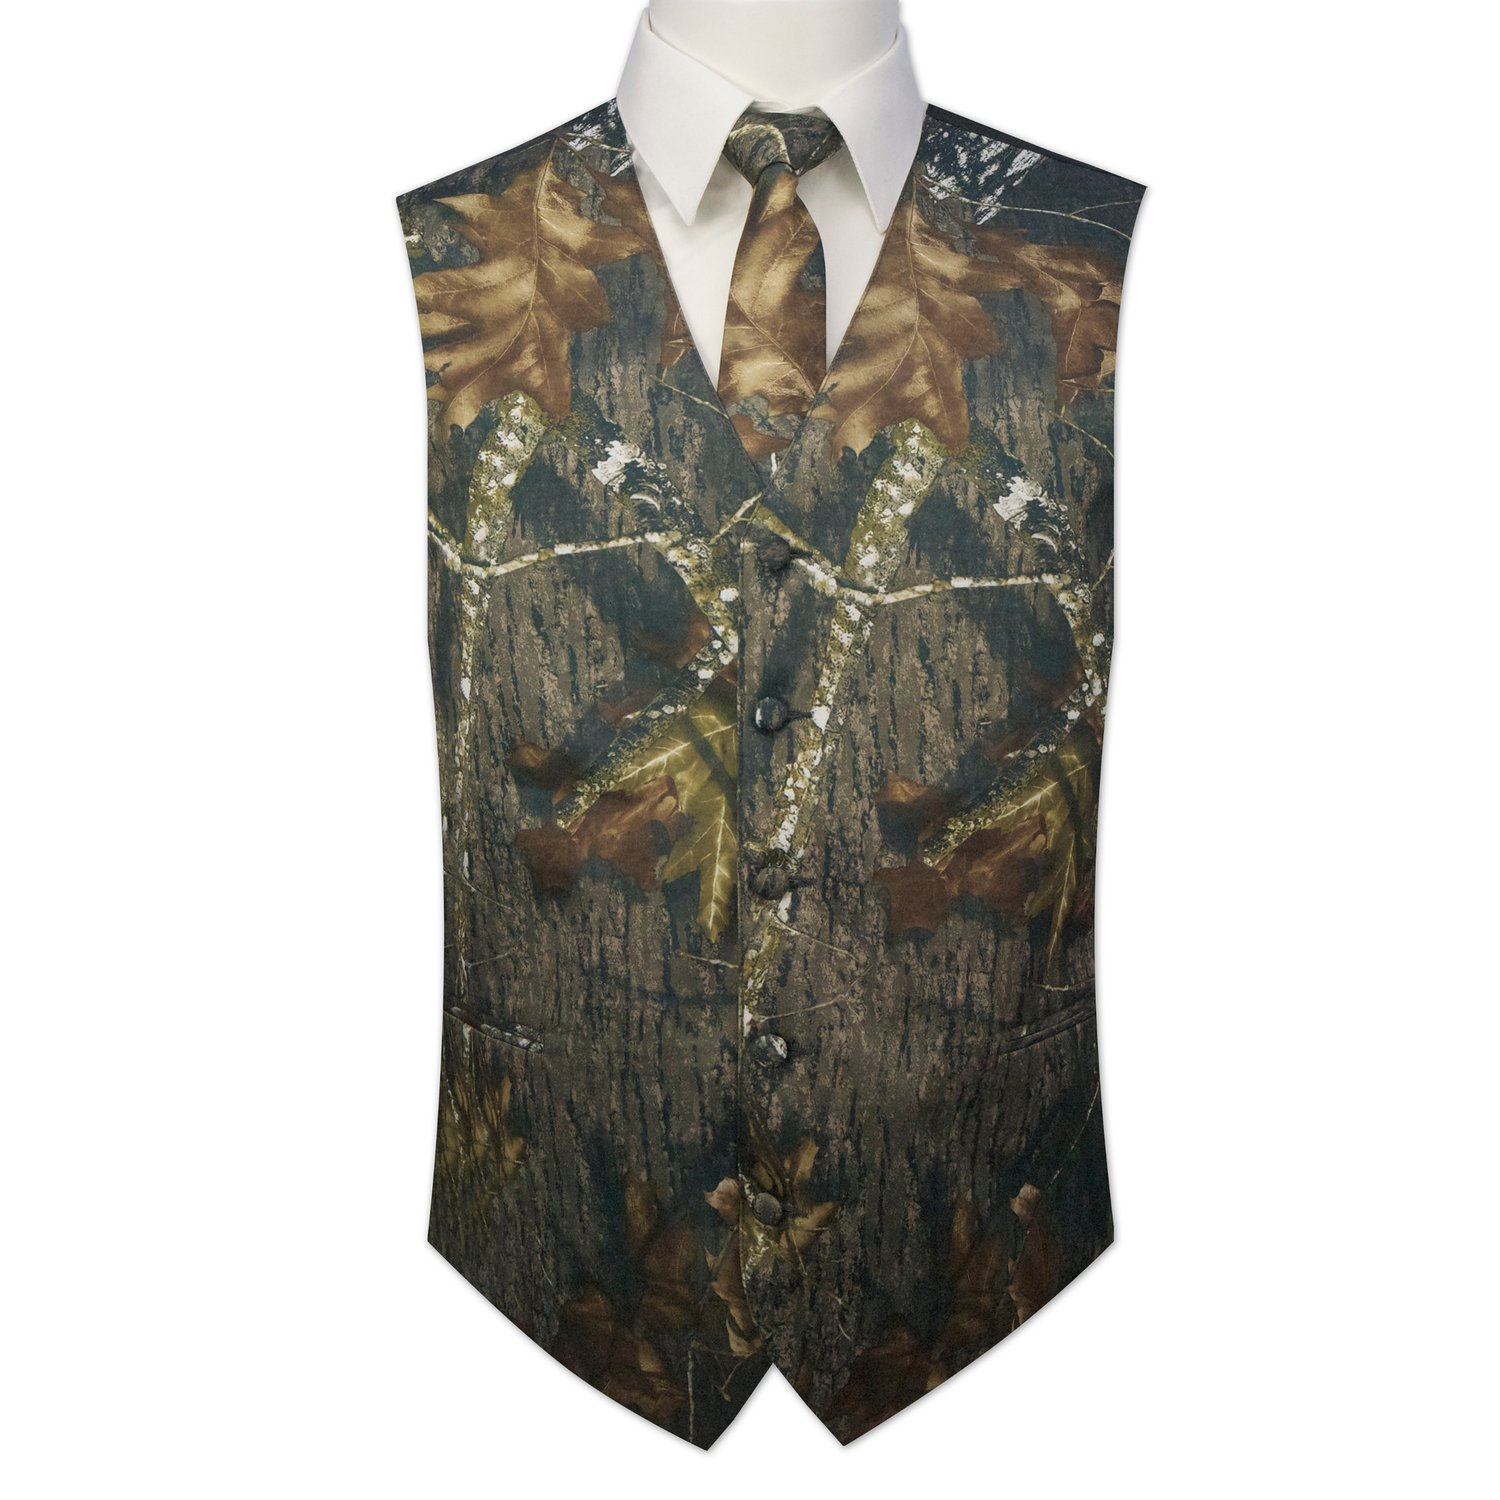 Men's dark camouflage pattern cotton full back vest with 5 buttons and 2 front pockets. Fully lined. Made from % cotton ripstop oz. sherwood stalker fabric. Vest's front and back are of the same color and fabric. Vest's back is NOT ADJUSTABLE. Sizes 2XL and up sold at additional cost.